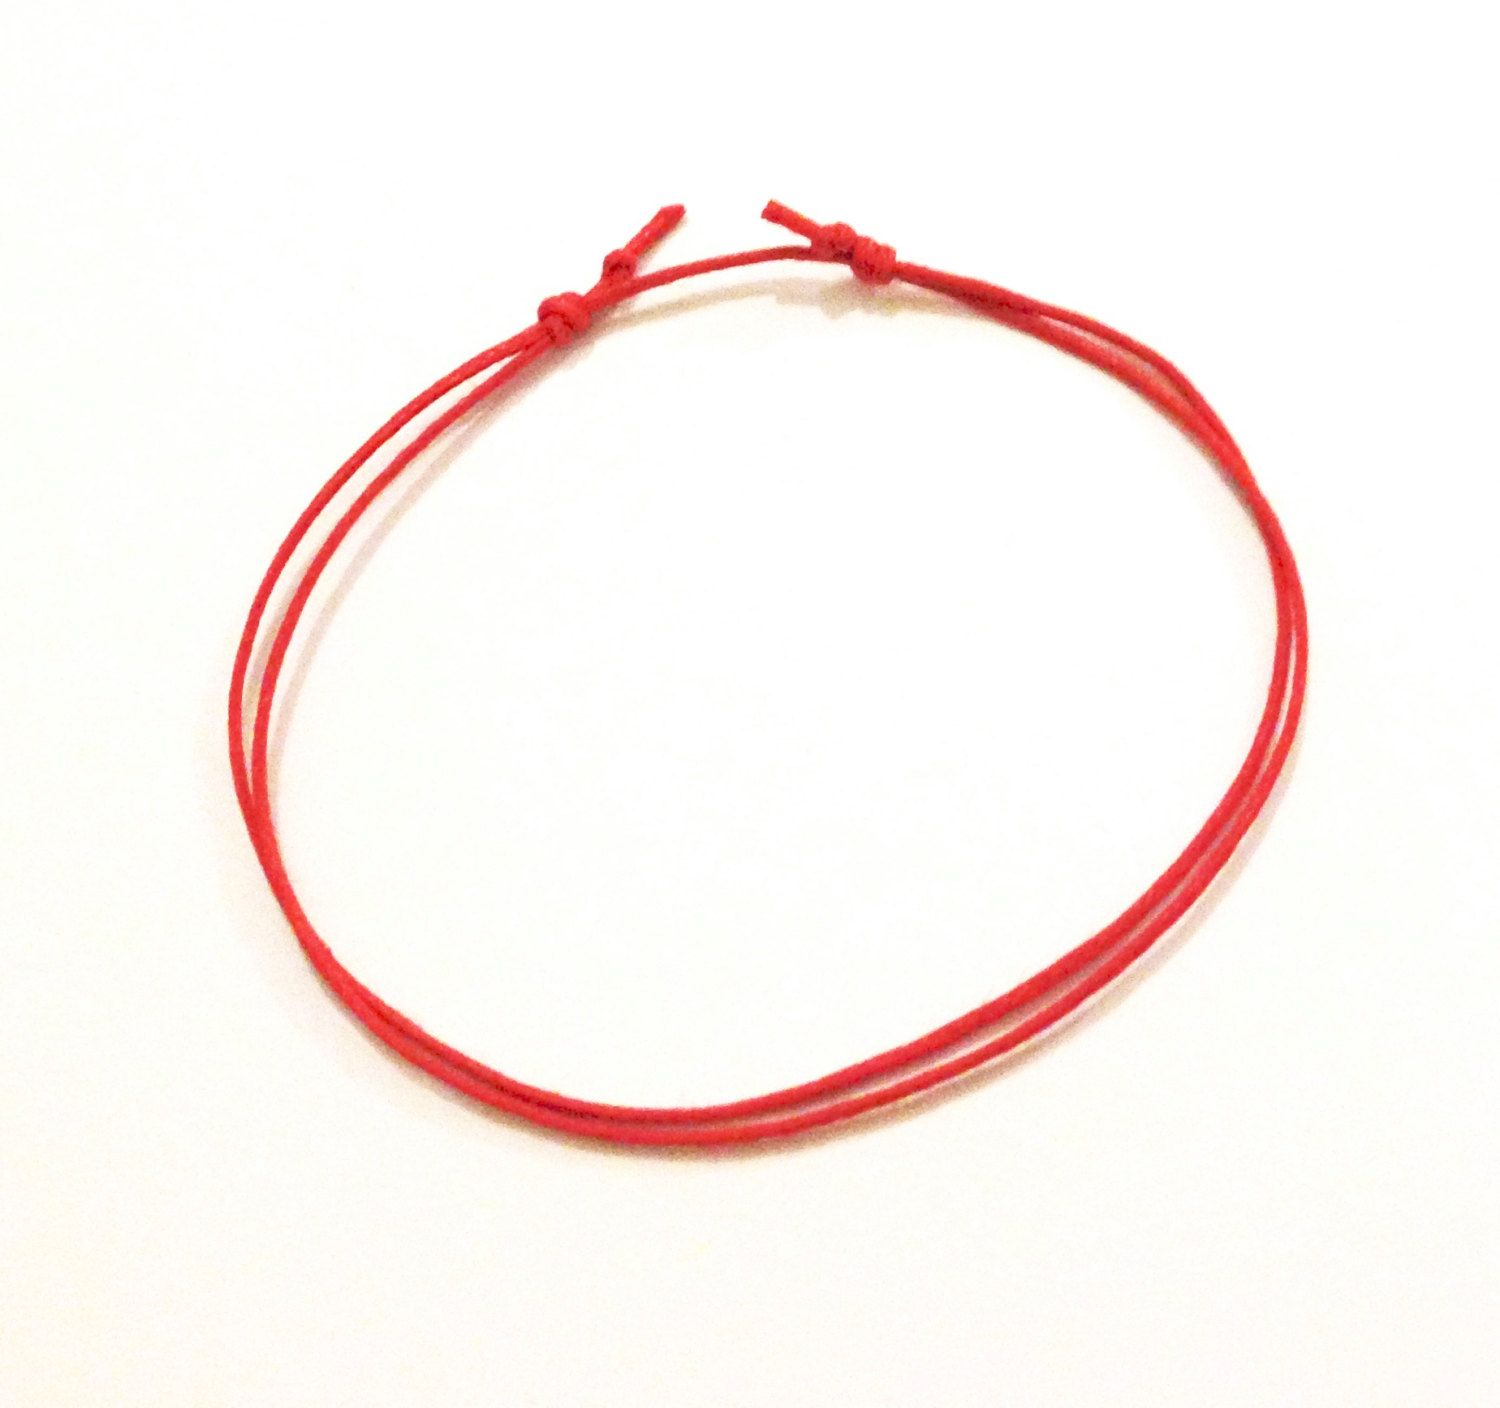 used fate of bracelets myshoplah anklet red braided string for anklets